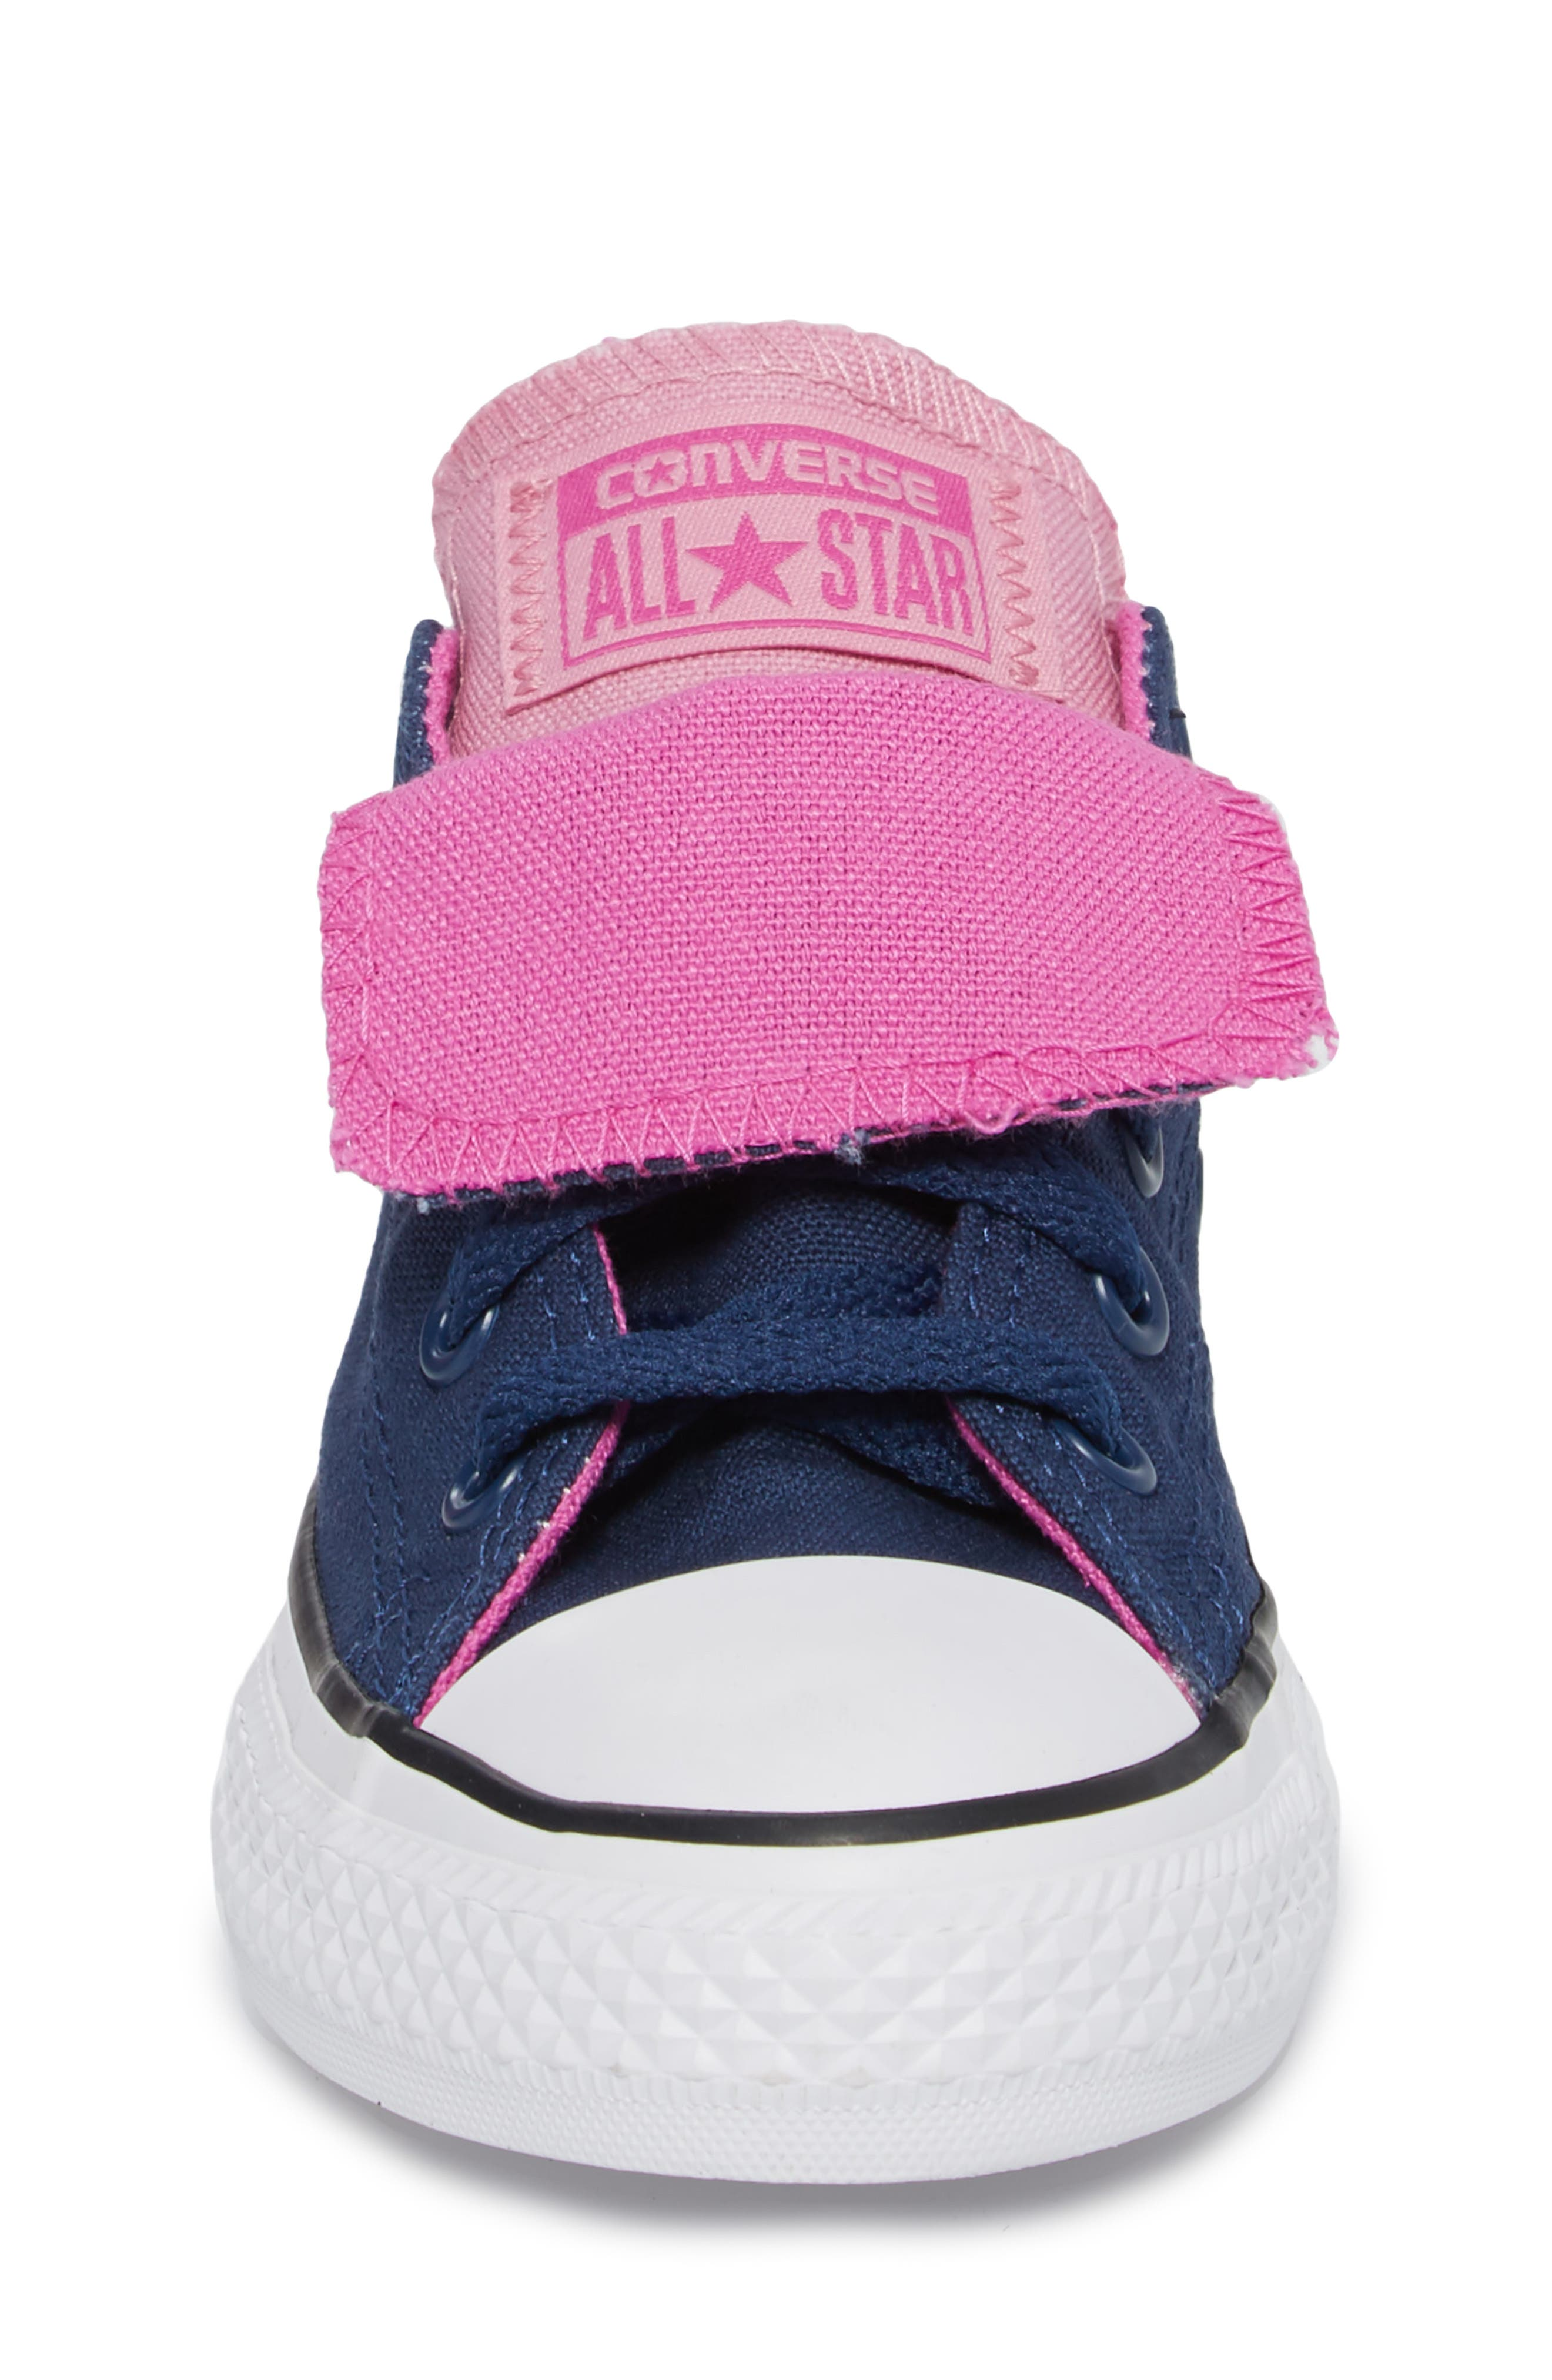 All Star<sup>®</sup> Double Tongue Sneaker,                             Alternate thumbnail 4, color,                             Navy